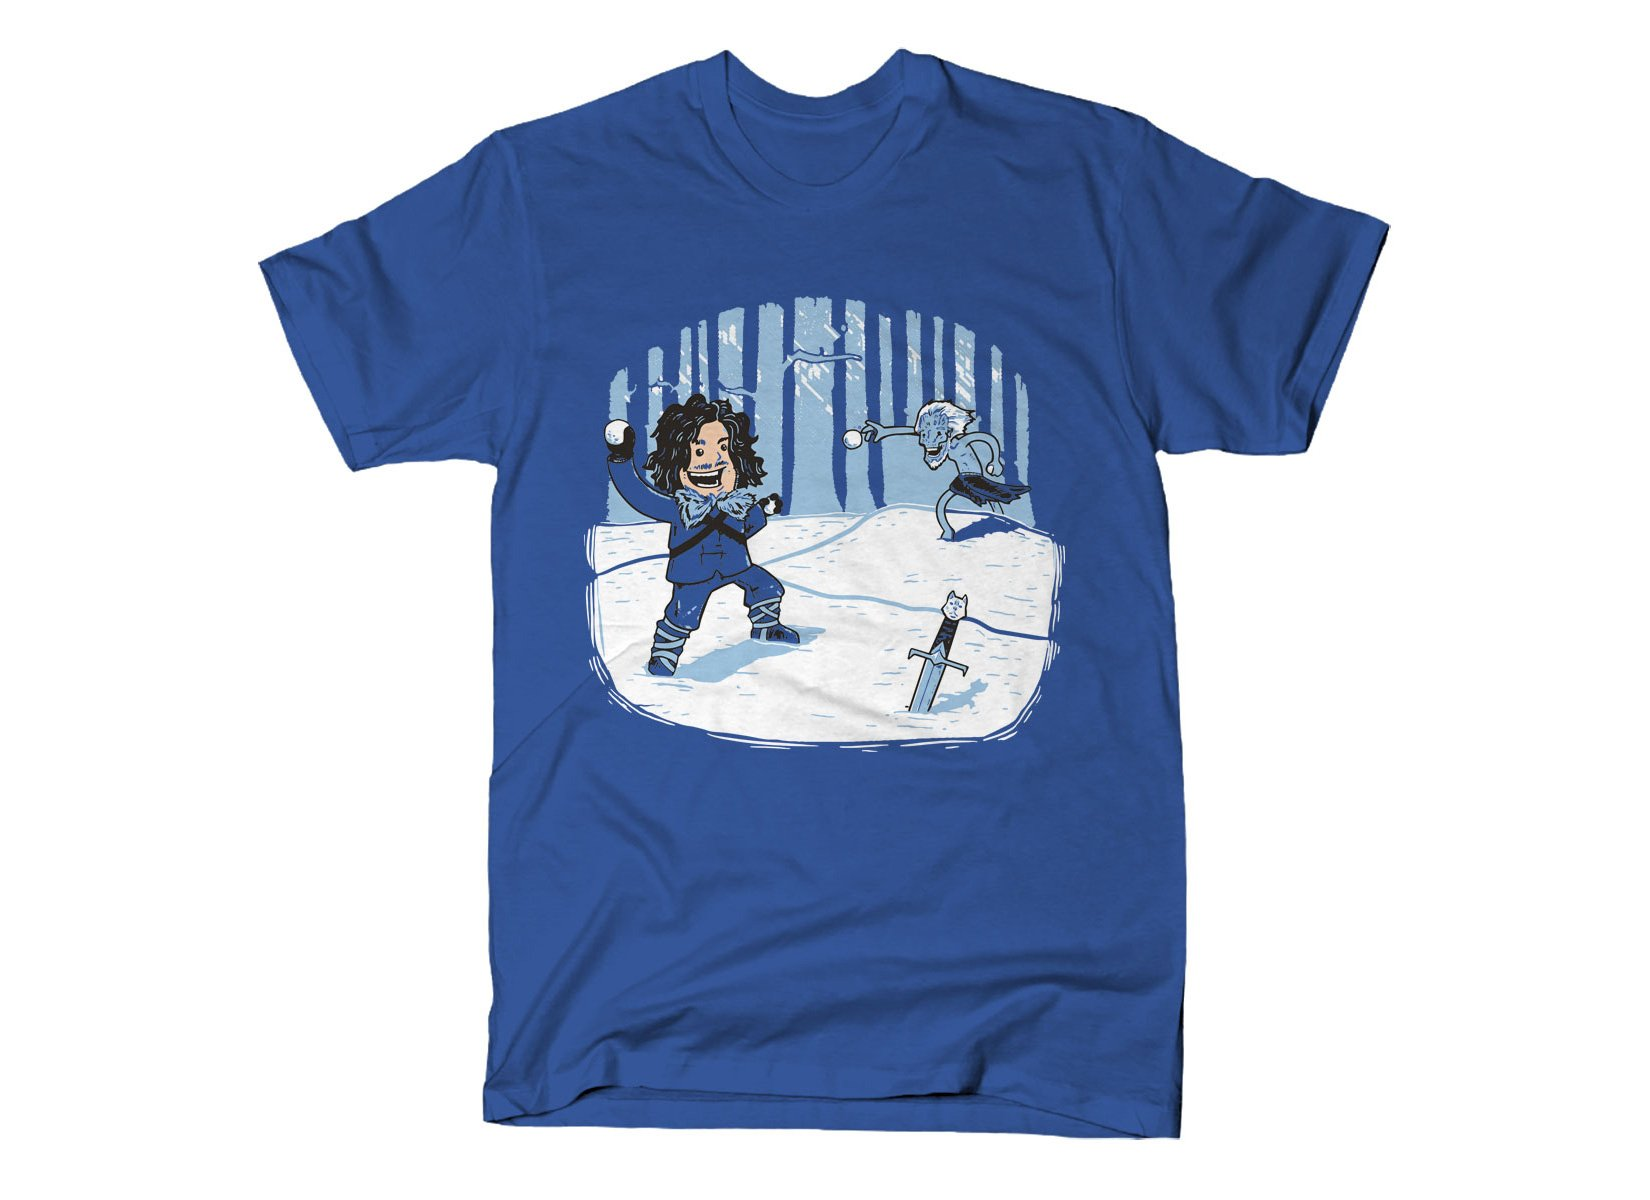 Jon Snowball on Mens T-Shirt